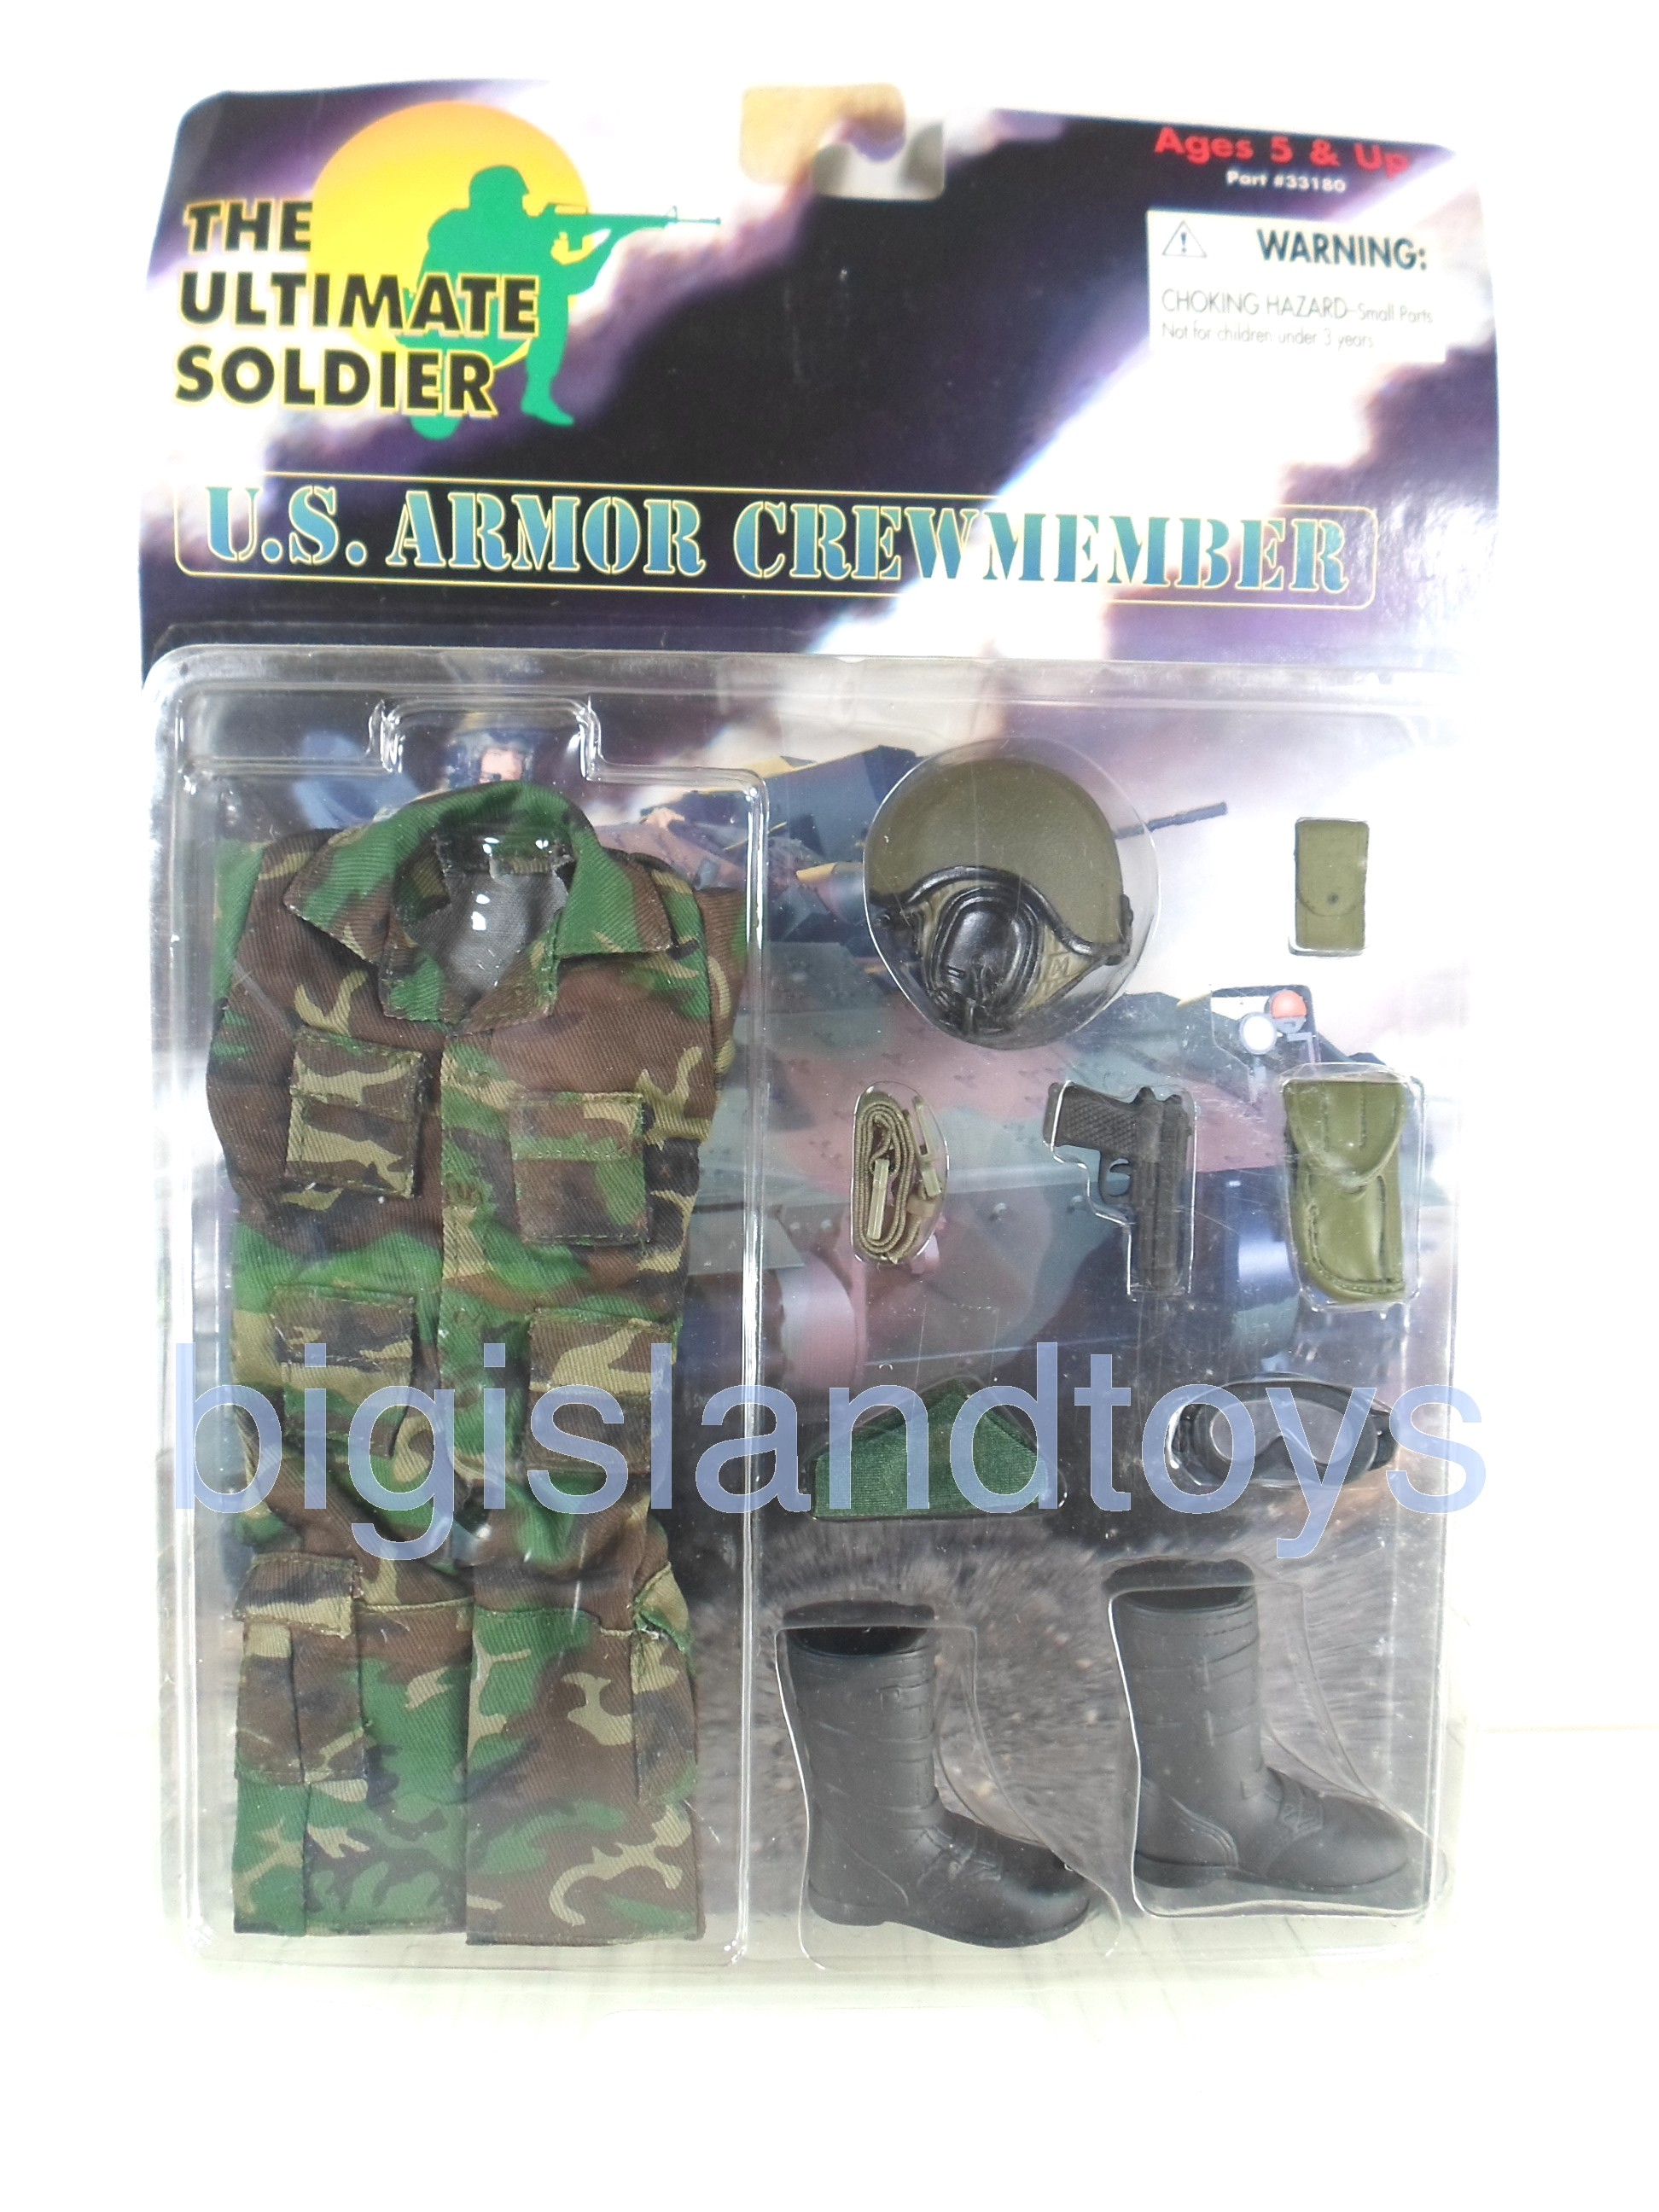 The Ultimate Soldier     U.S. Armor Crew Member